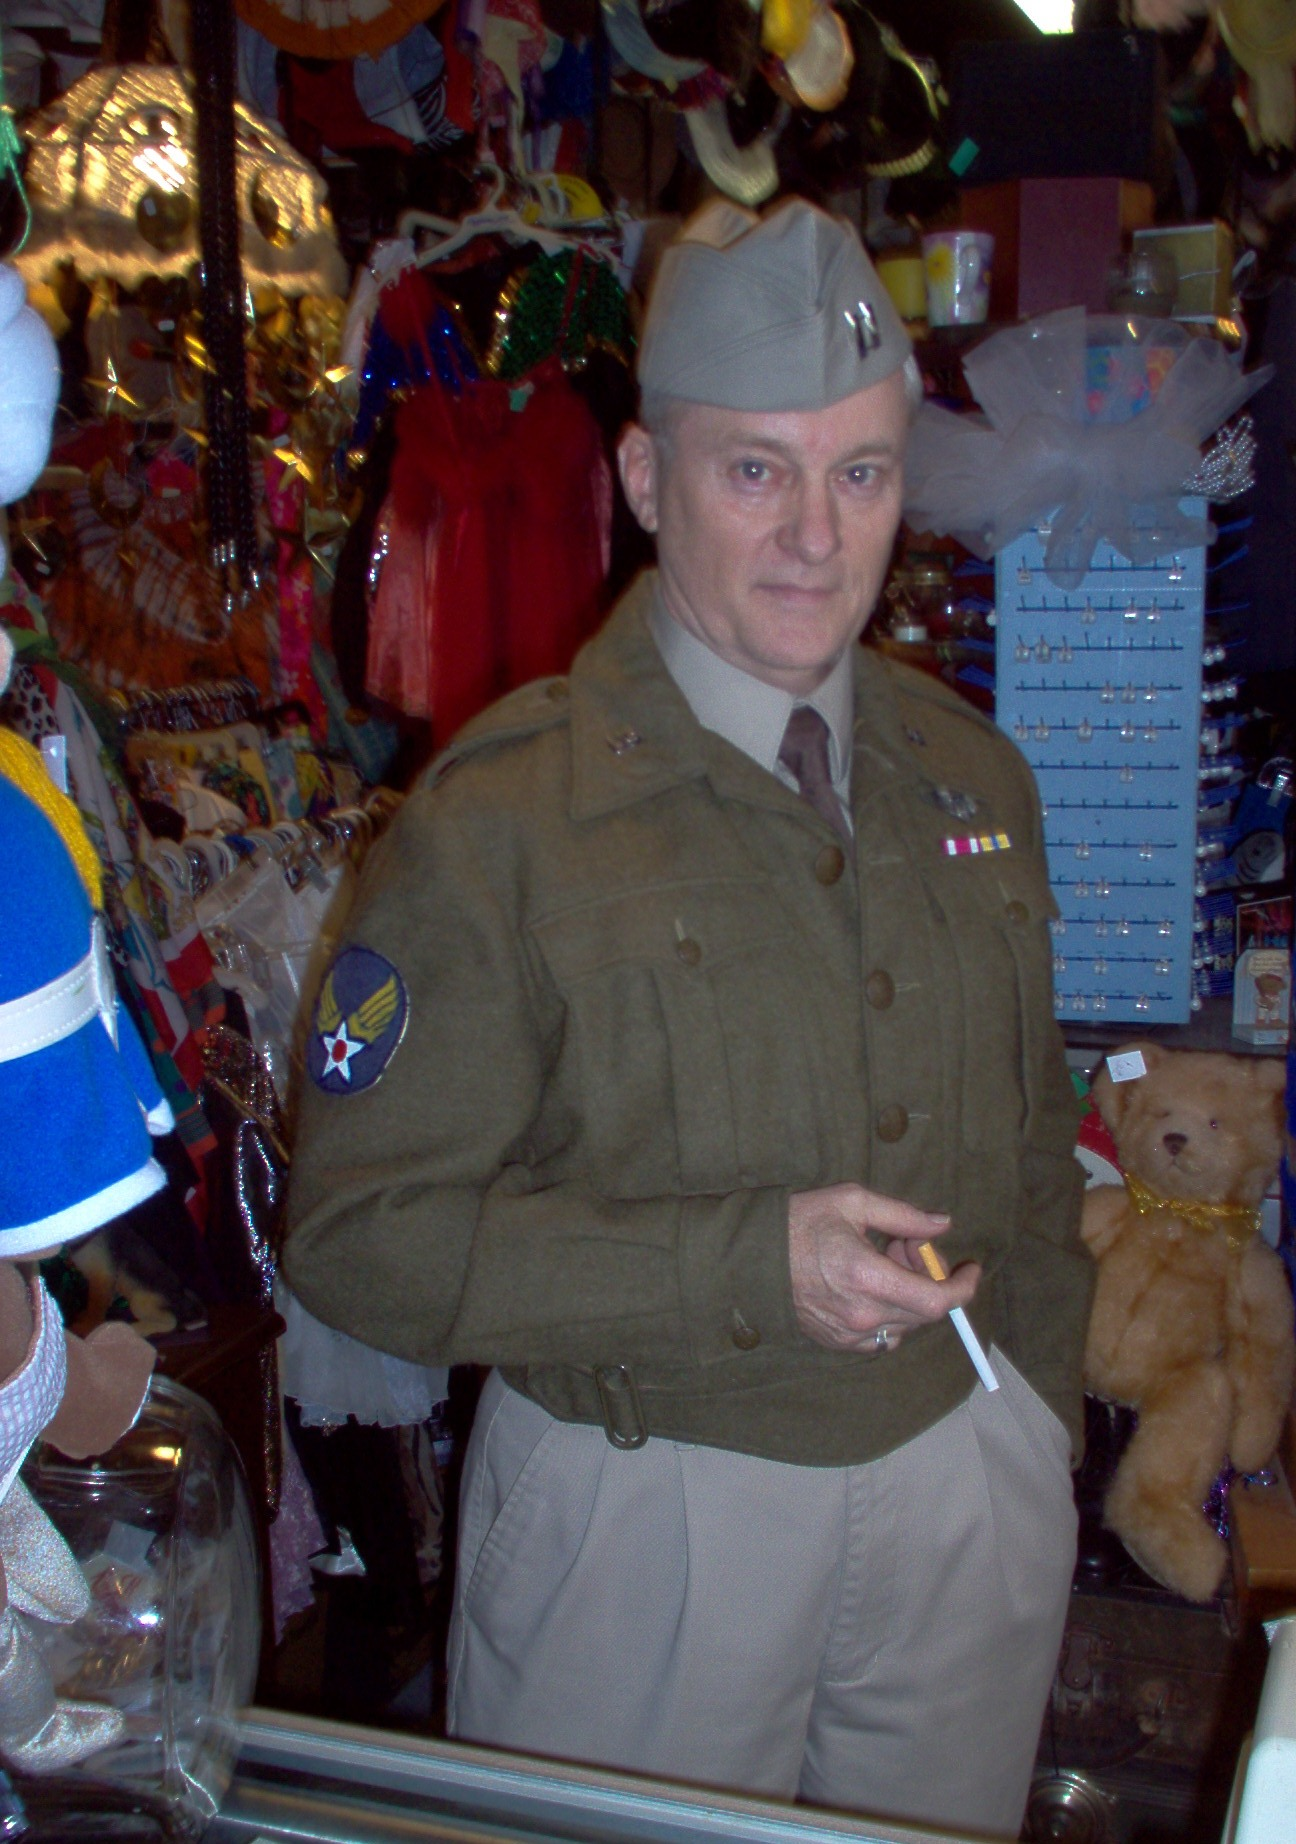 military man, Military, Military Dallas, Military Attire, Military Attire Dallas, Military BDUs Military BDUs Dallas, Military CDUs, Military CDUs Dallas, Class A Military Outfit, Class A Military Outfit Dallas, Vintage Military Outfits, Vintage Military Outfits Dallas, Vintage Military Clothing, Vintage Military Clothing Dallas, Military Uniforms, Military Uniforms Dallas, Vintage Military Uniforms, Vintage Military Uniforms Dallas,